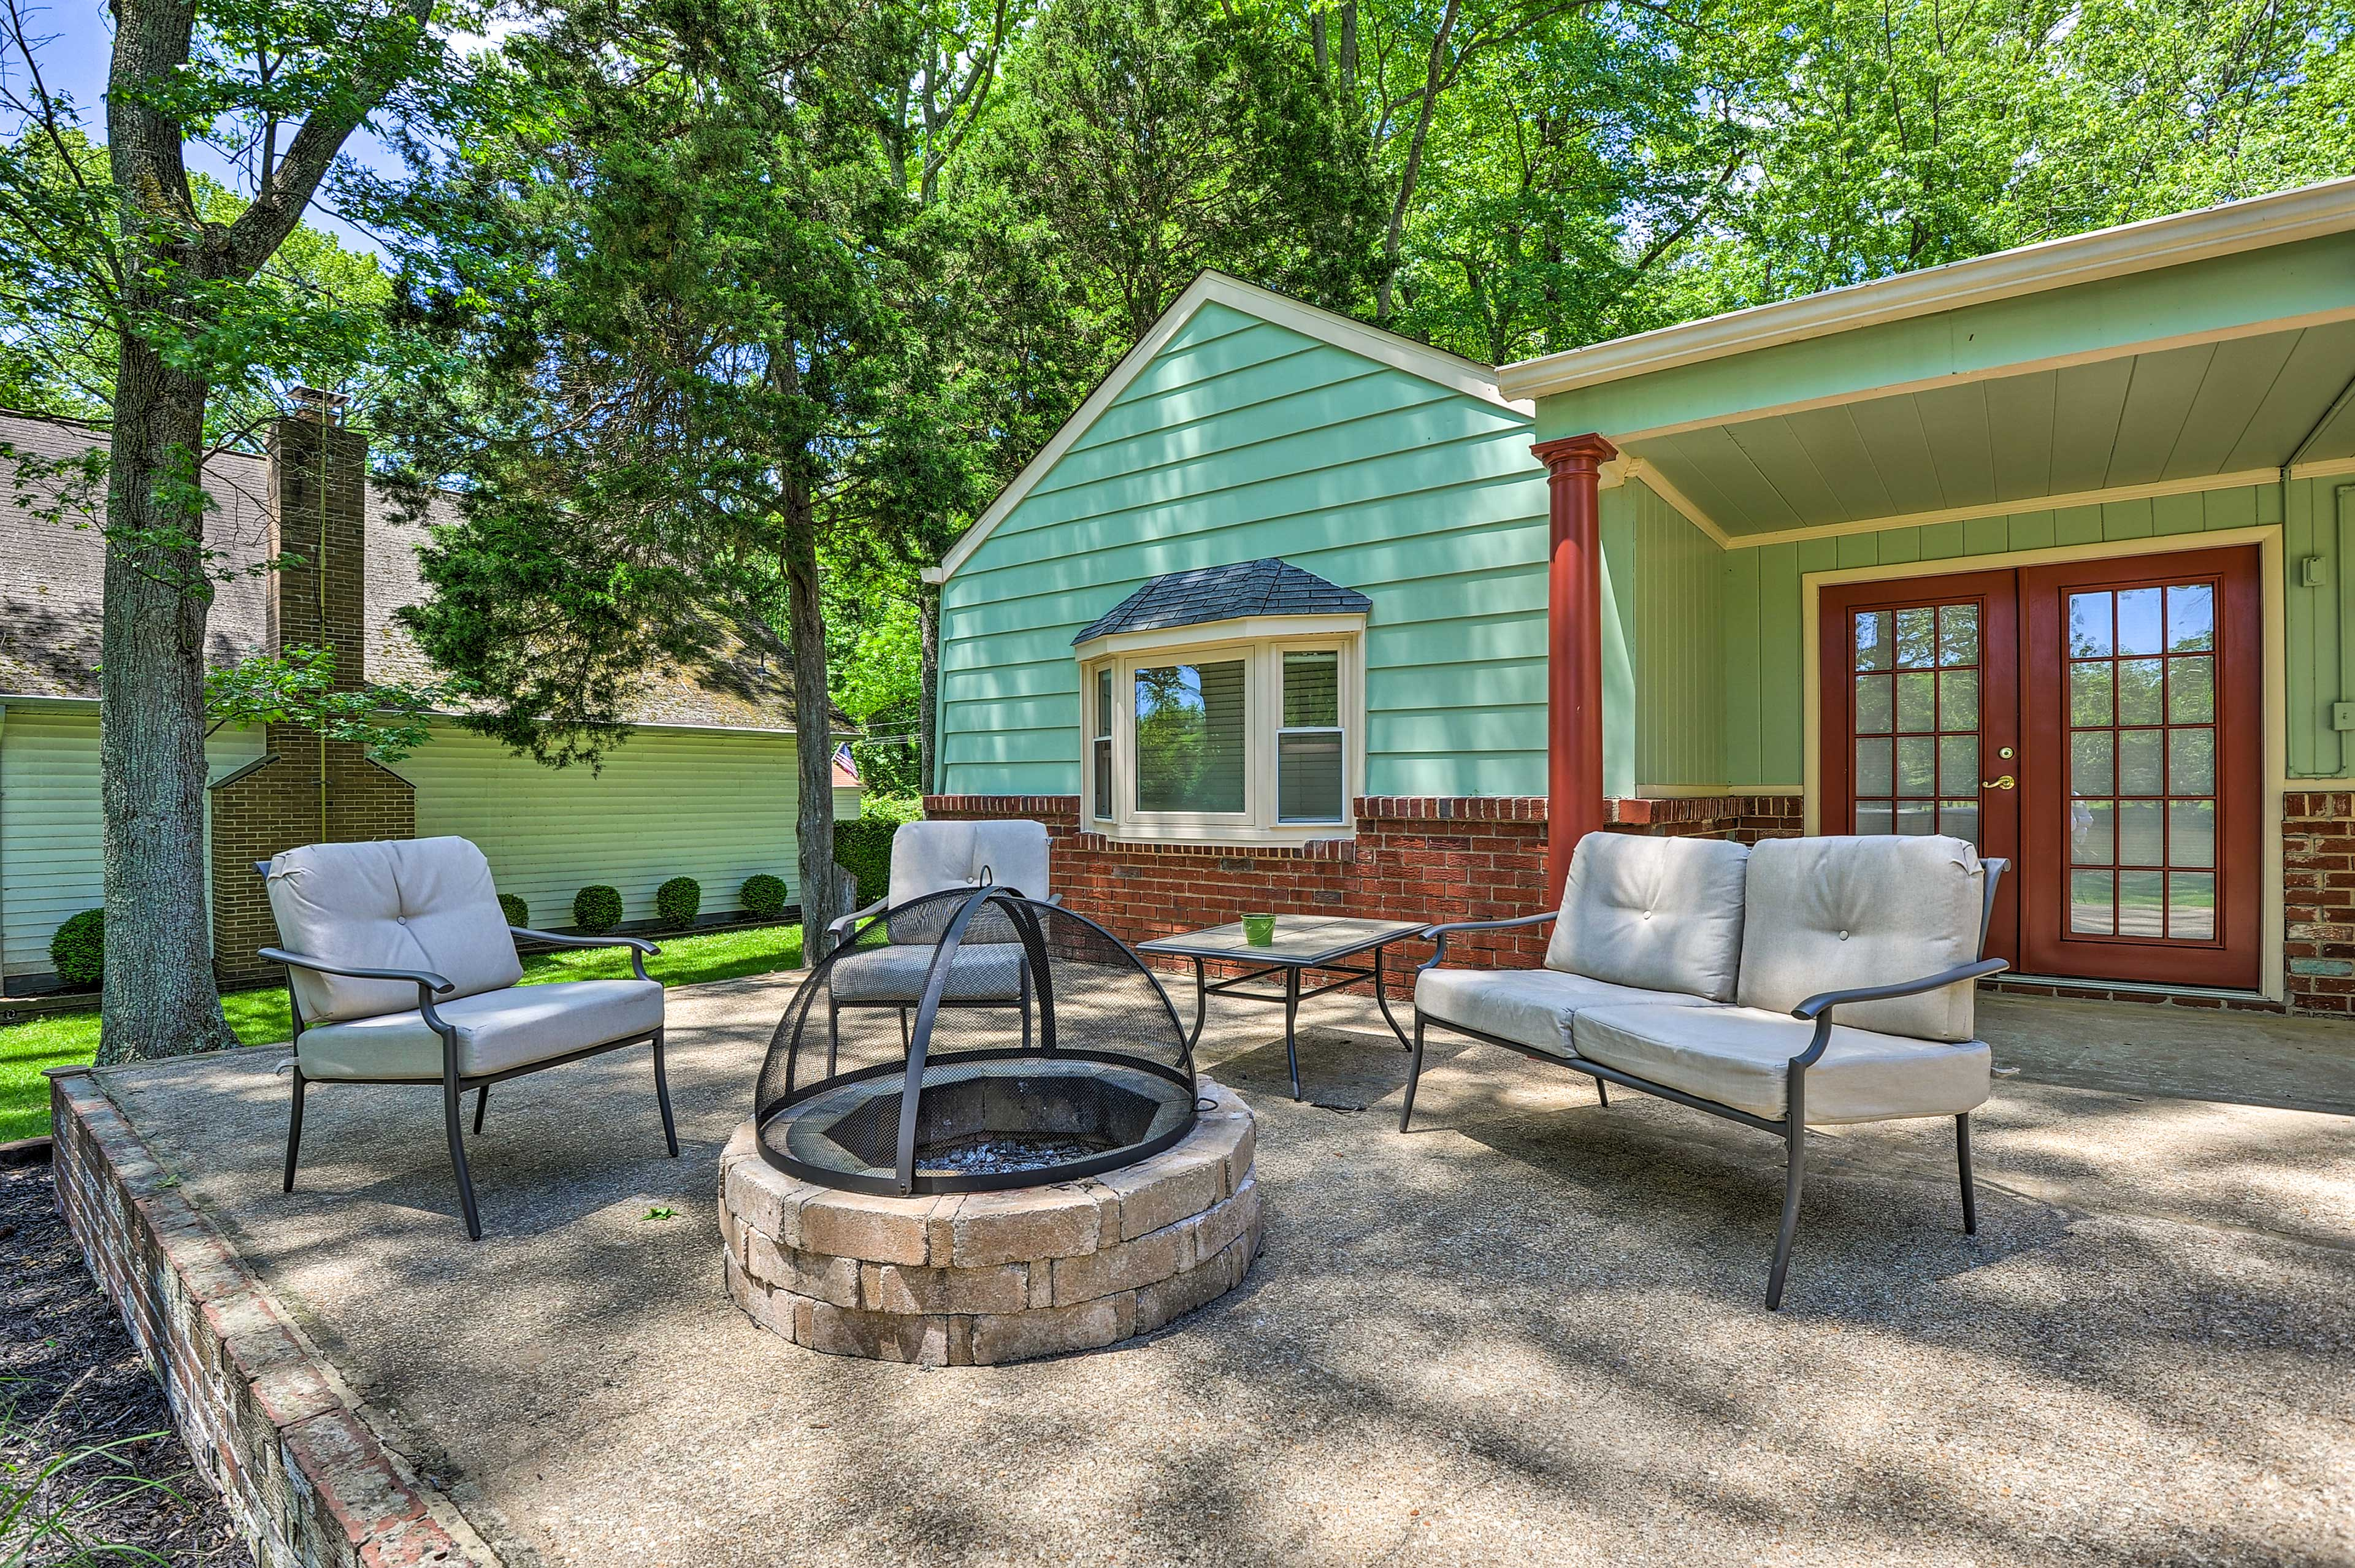 This vacation rental features and outdoor entertainment space out back.